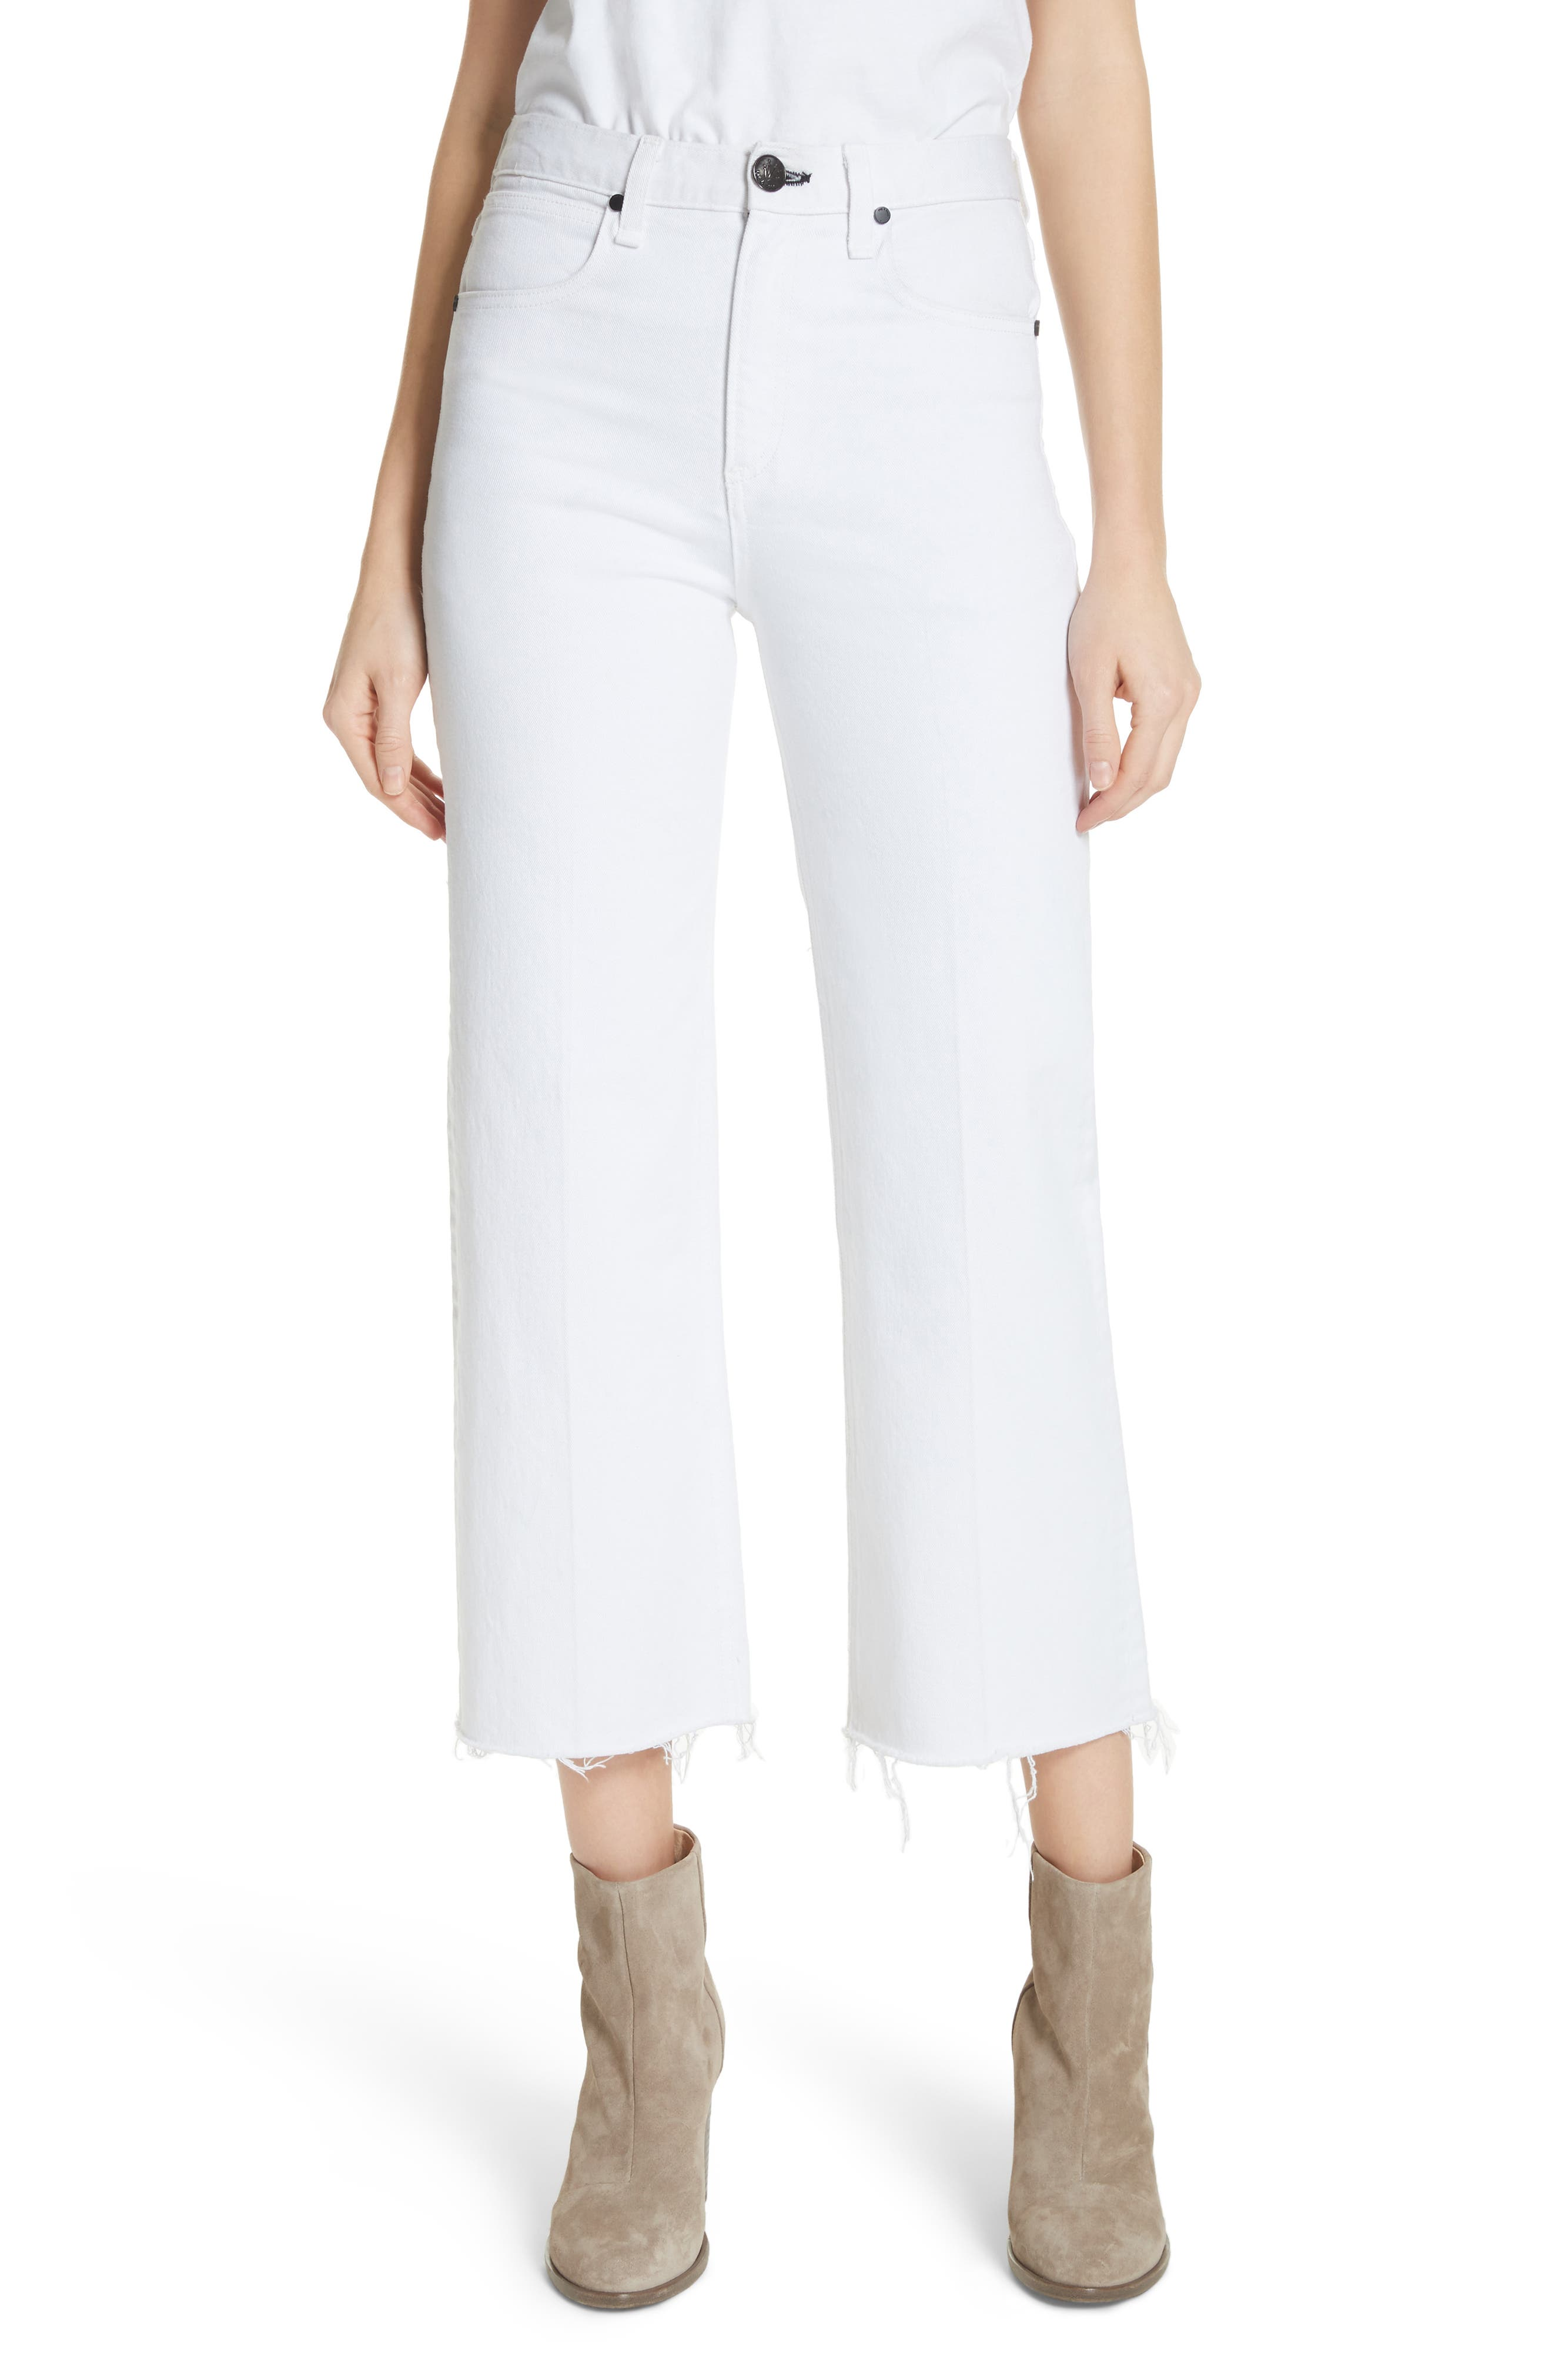 Justine High Waist Ankle Wide Leg Trouser Jeans,                         Main,                         color, White